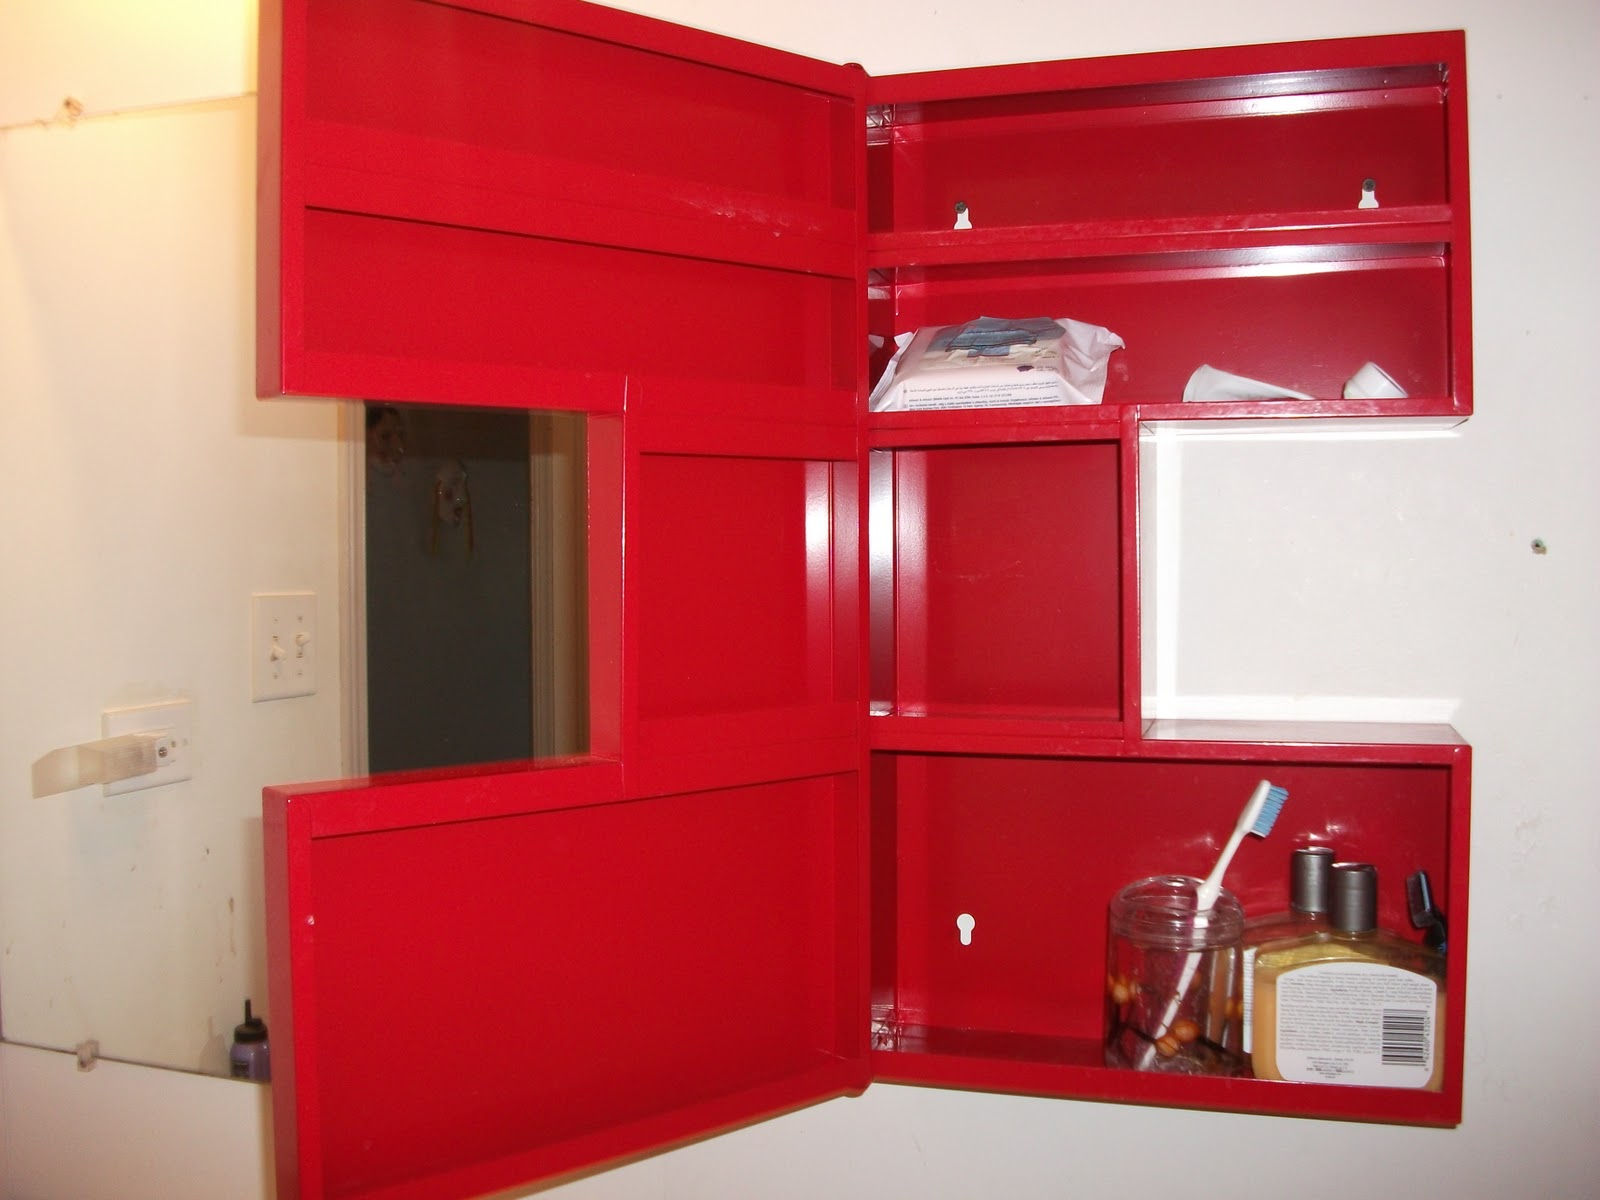 This Is A Beautiful Red Medicine Cabinet From IKEA. Bought In Novermber,  2009. Interesting Shape. Features: Has Compartments Inside To Hold Items.